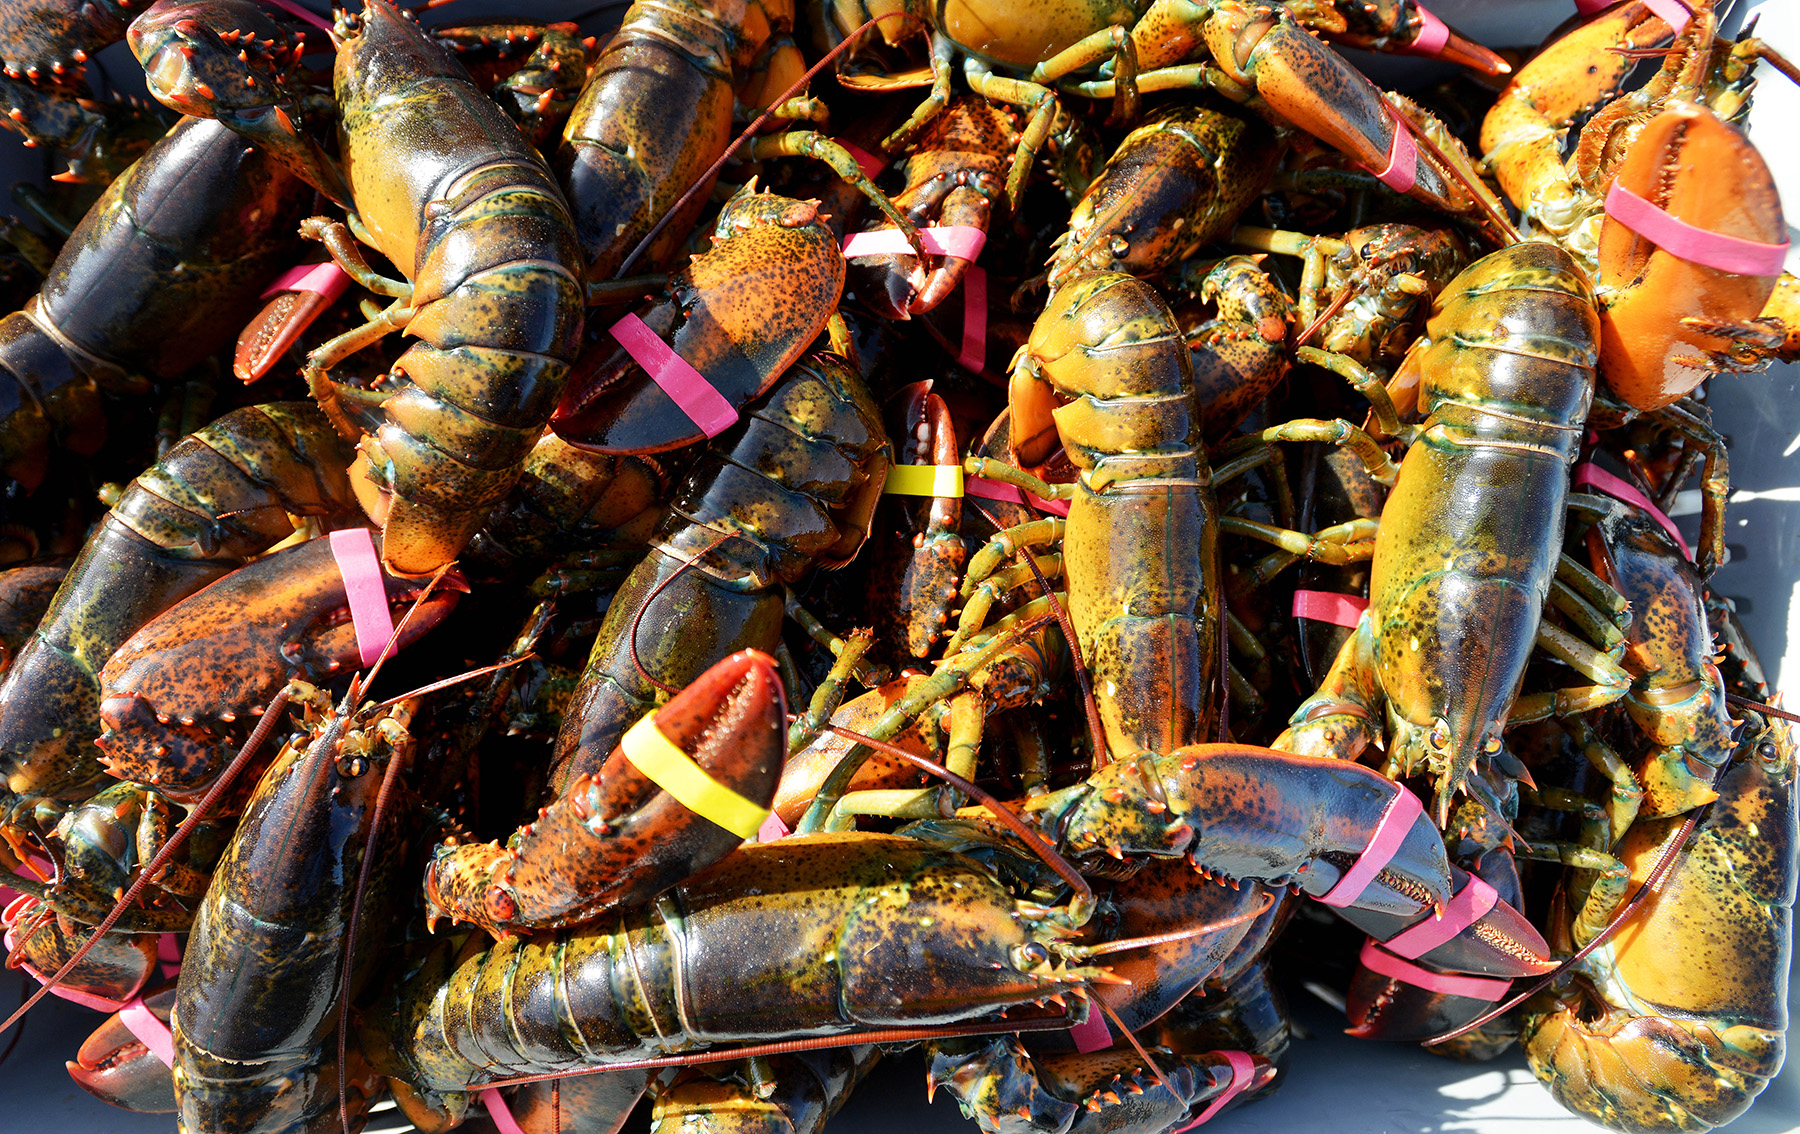 live lobsters fill a crate